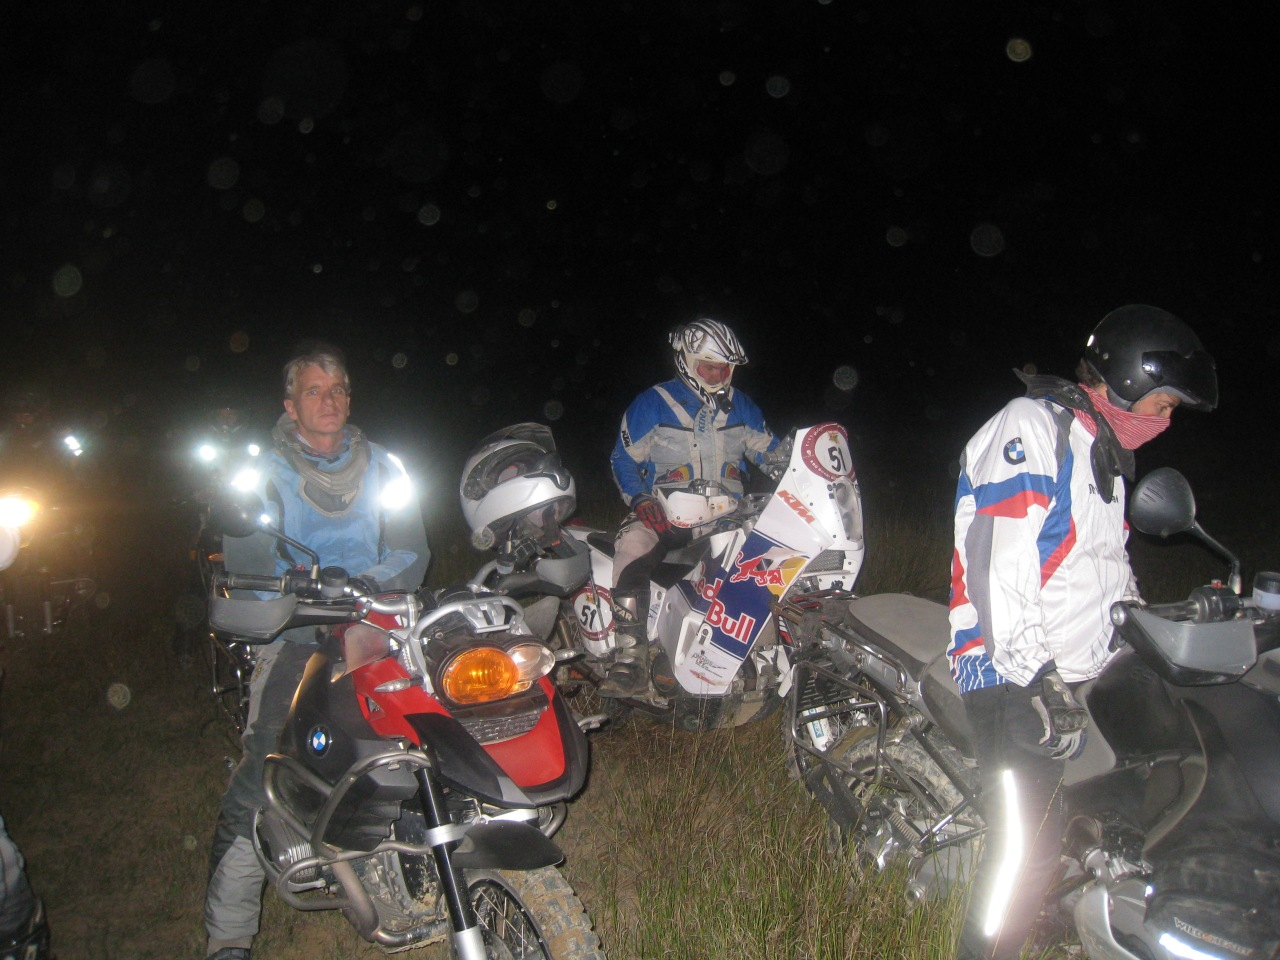 Night riding on sand and dunes... awesome fun